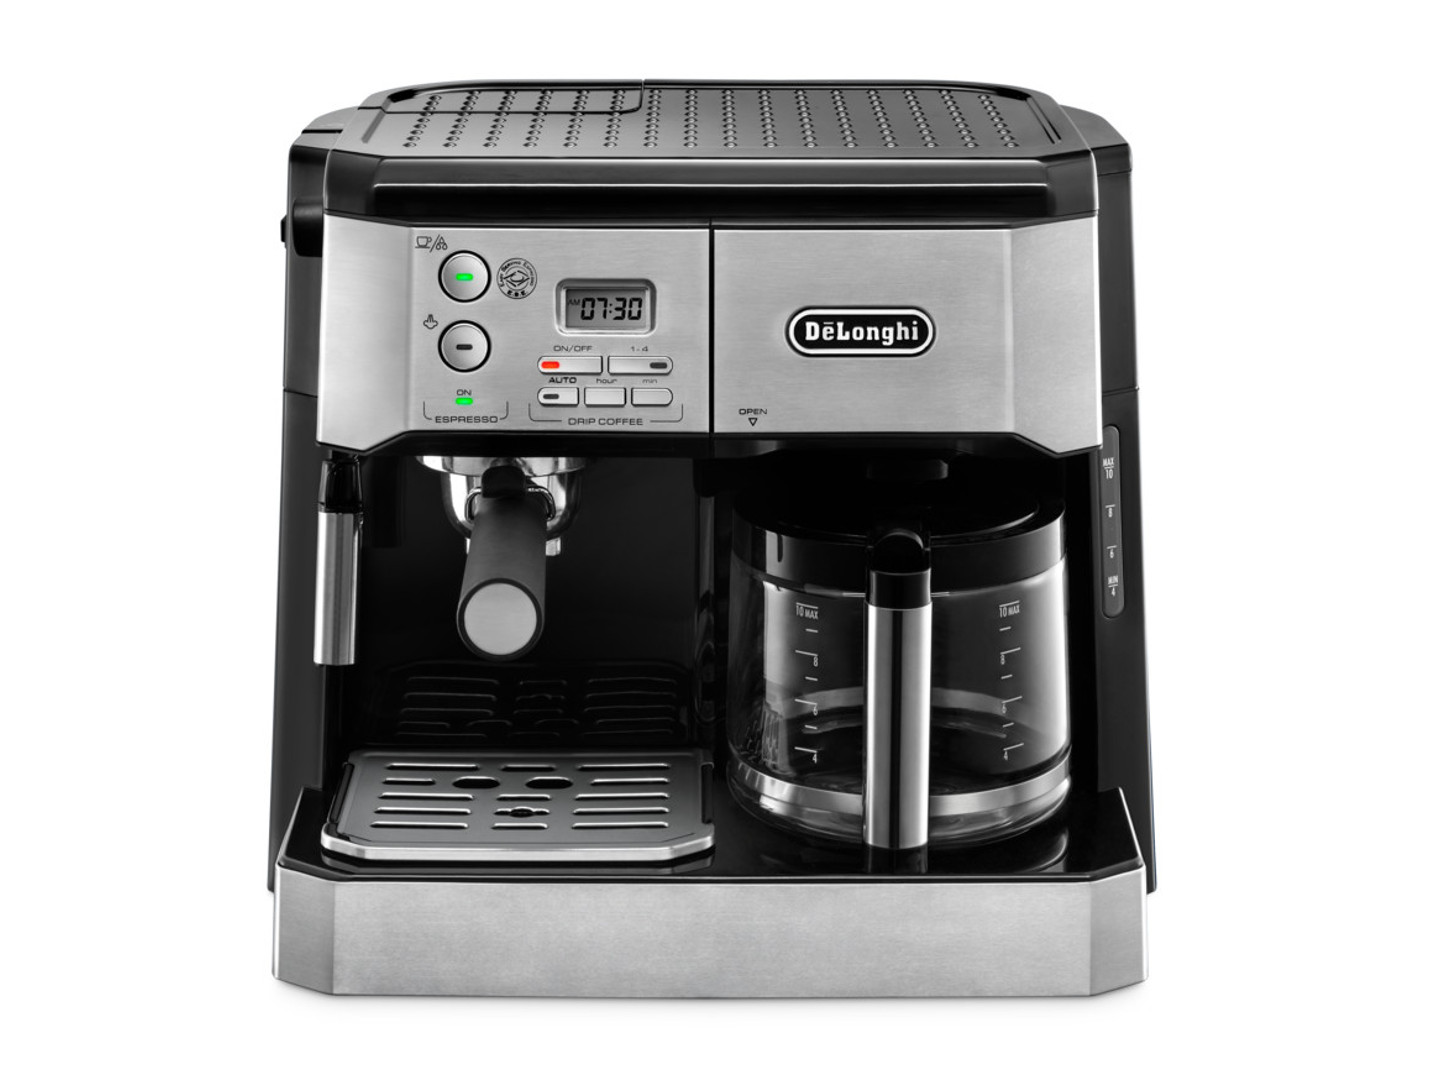 delonghi bco430 combination pump espresso drip coffee. Black Bedroom Furniture Sets. Home Design Ideas